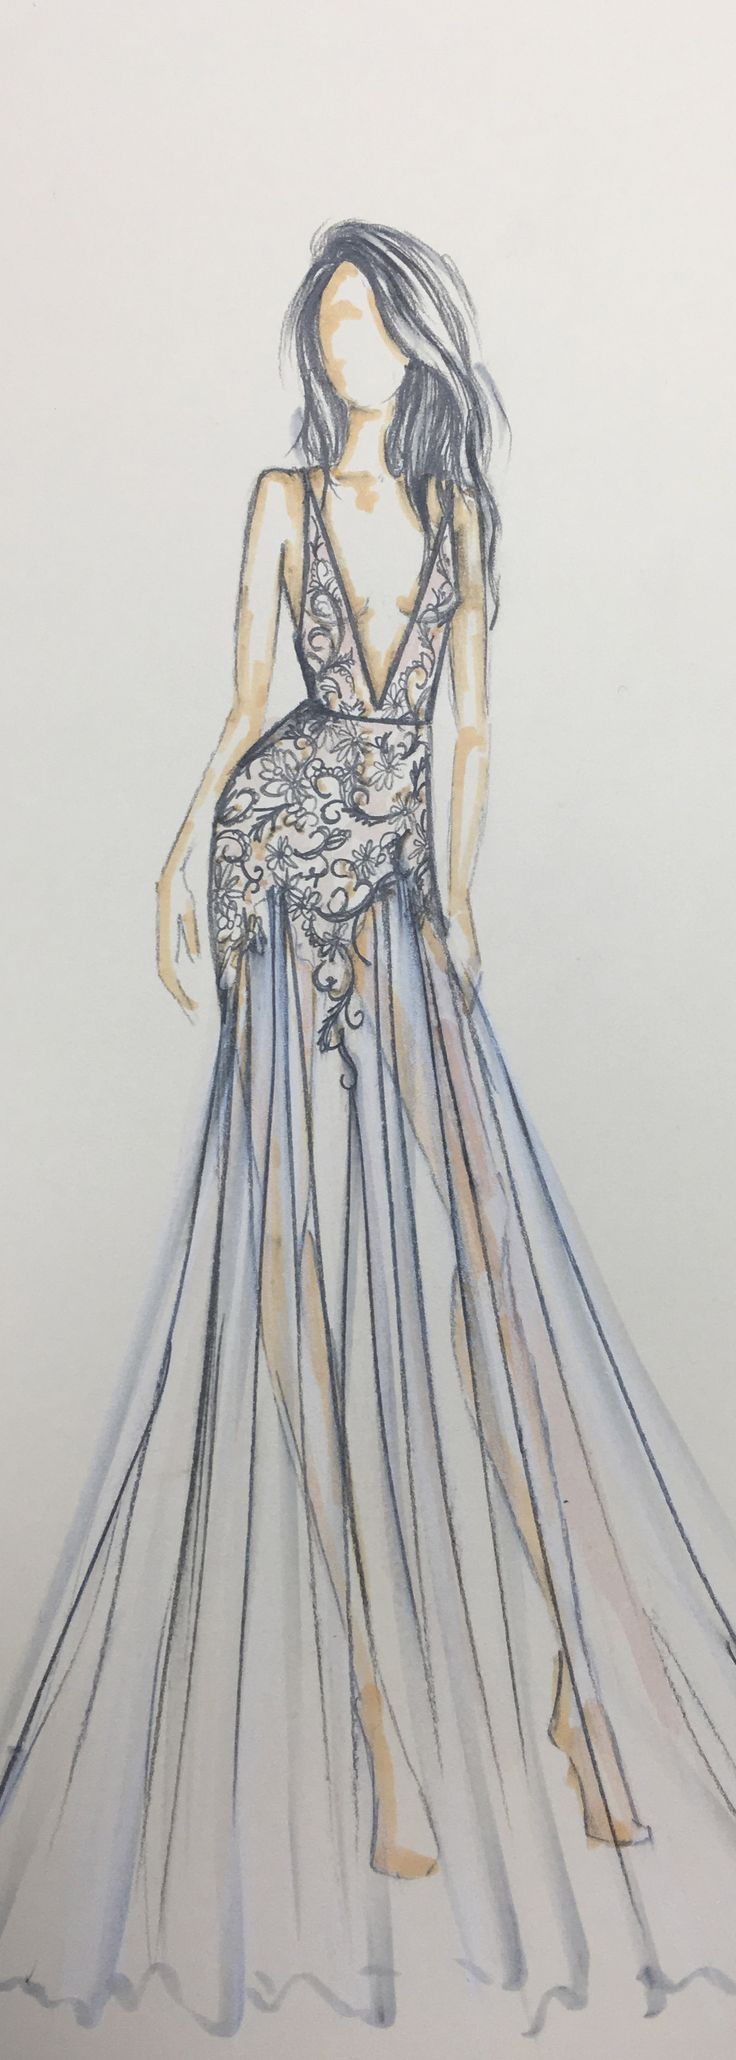 Elegant Best 25 Dress Sketches Ideas On Pinterest  Dress Drawing Dress